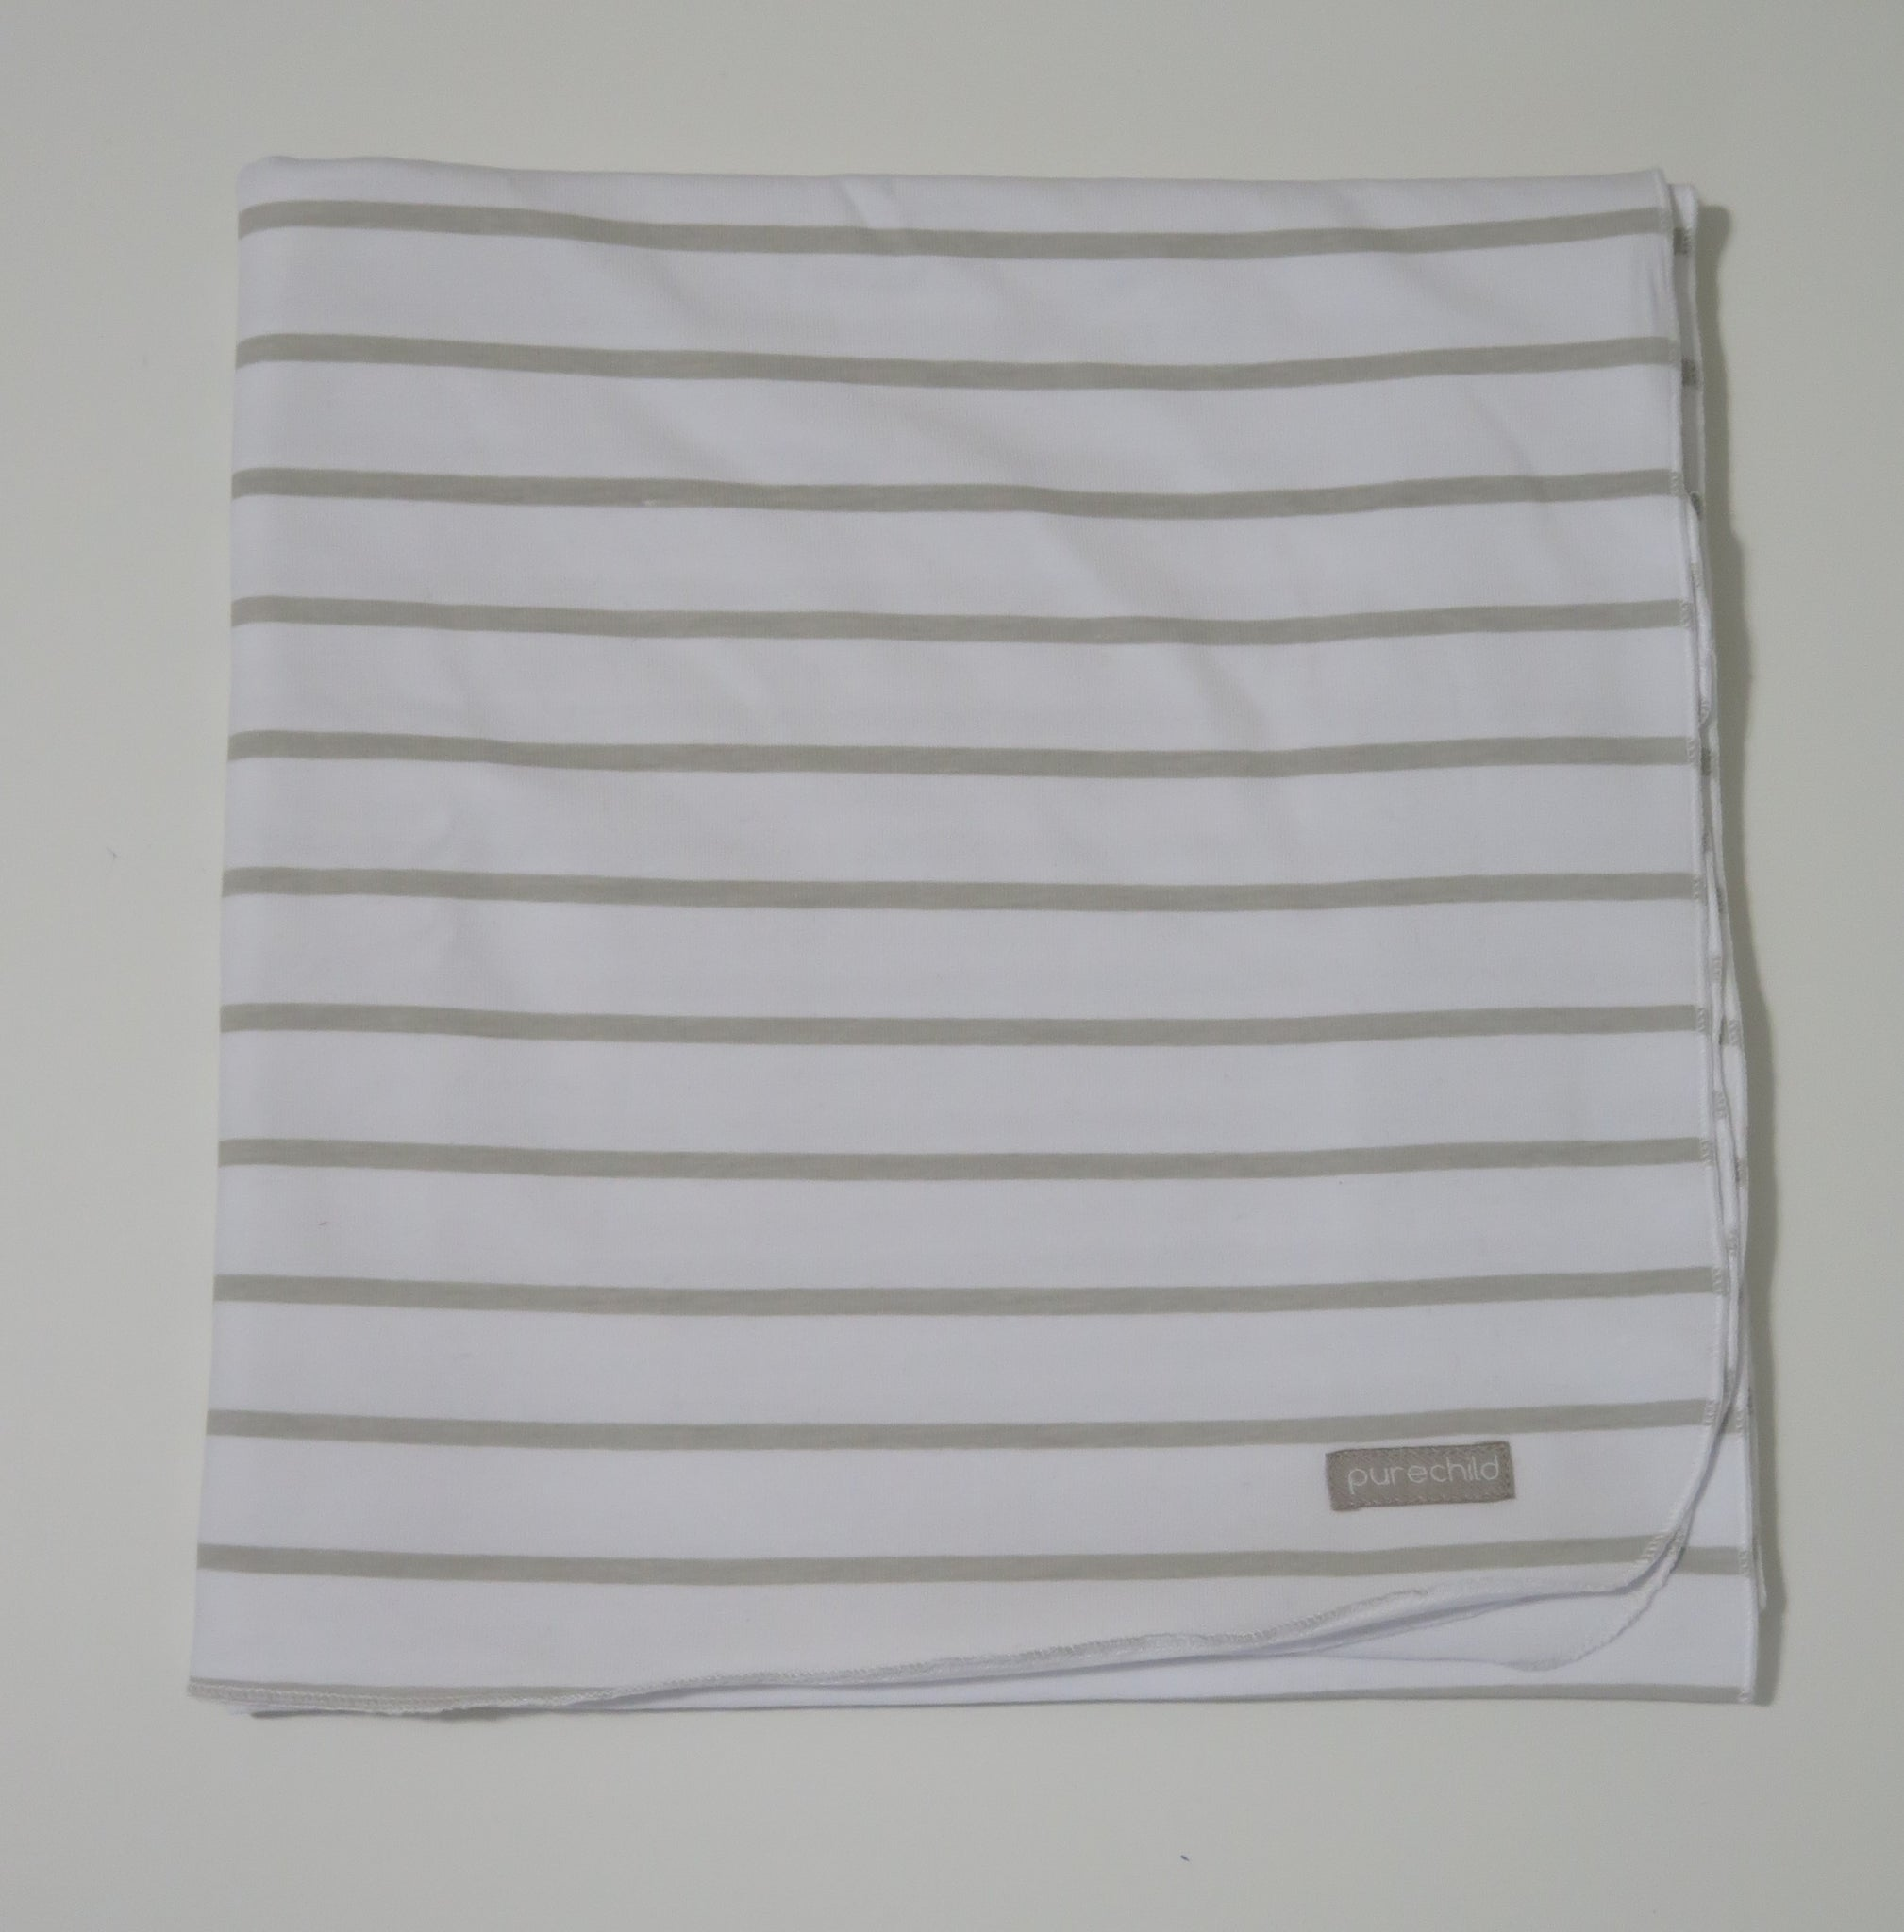 Pure Child natural striped blanket